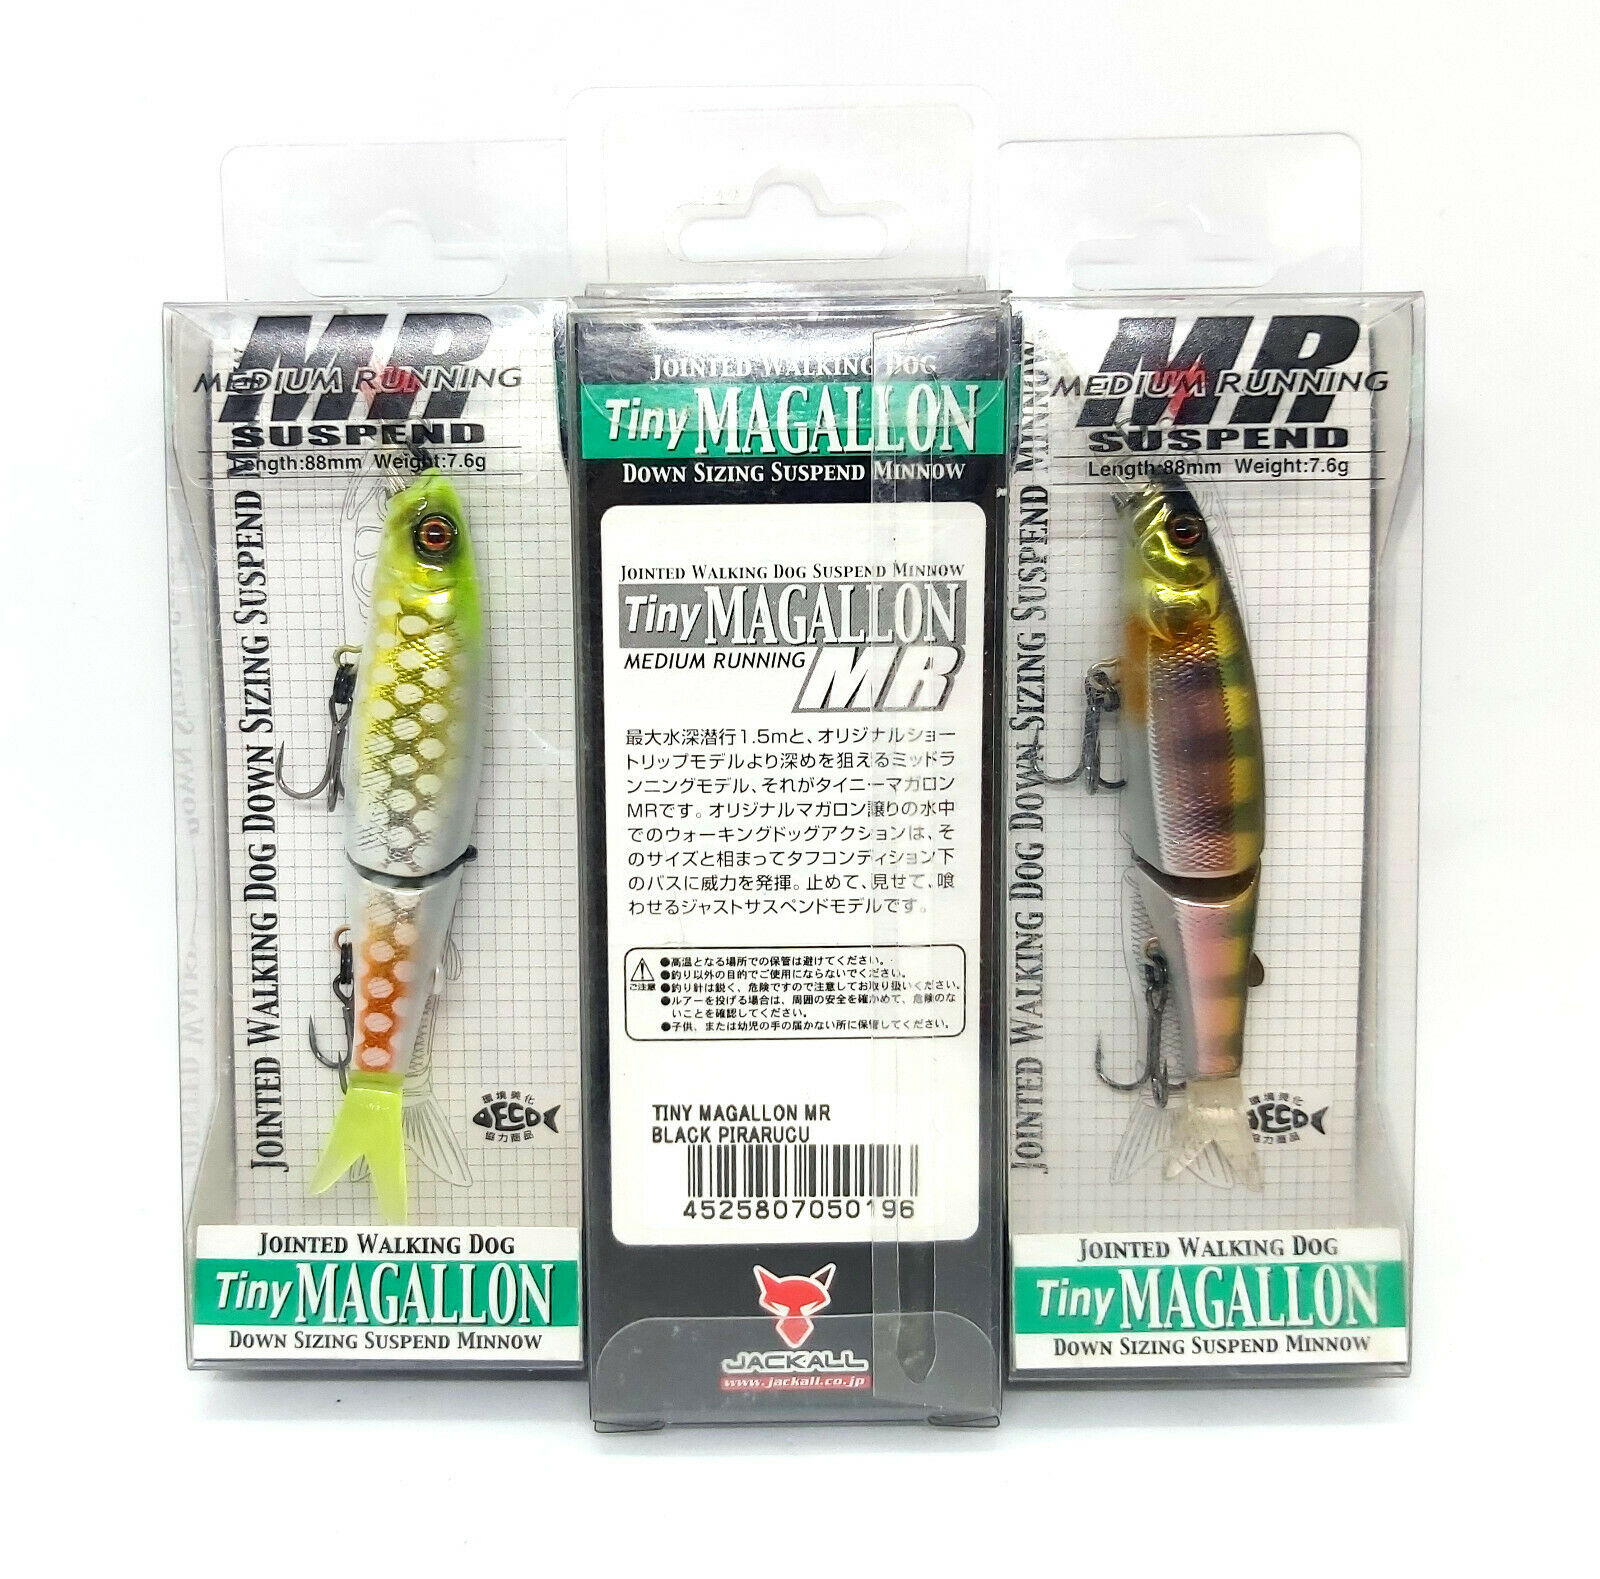 JACKALL BROS TINY MAGALLON SUSPEND MINNOW JOINTED WALKING DOG JAPAN LURE 88mm